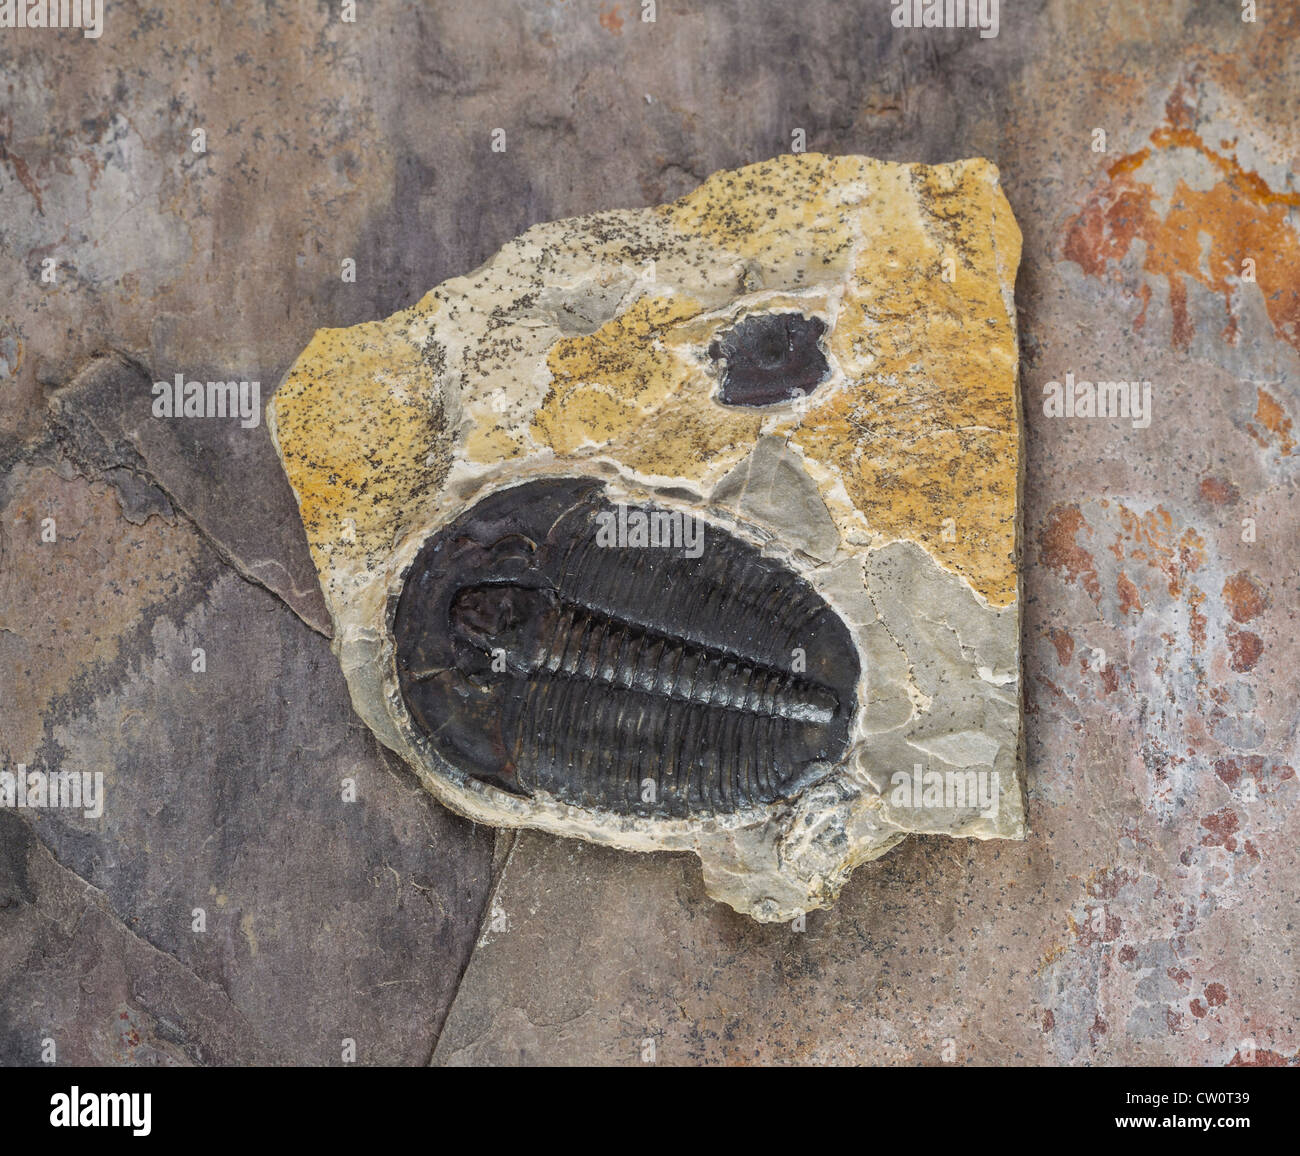 Whole Trilobite in limestone from Utah - Stock Image